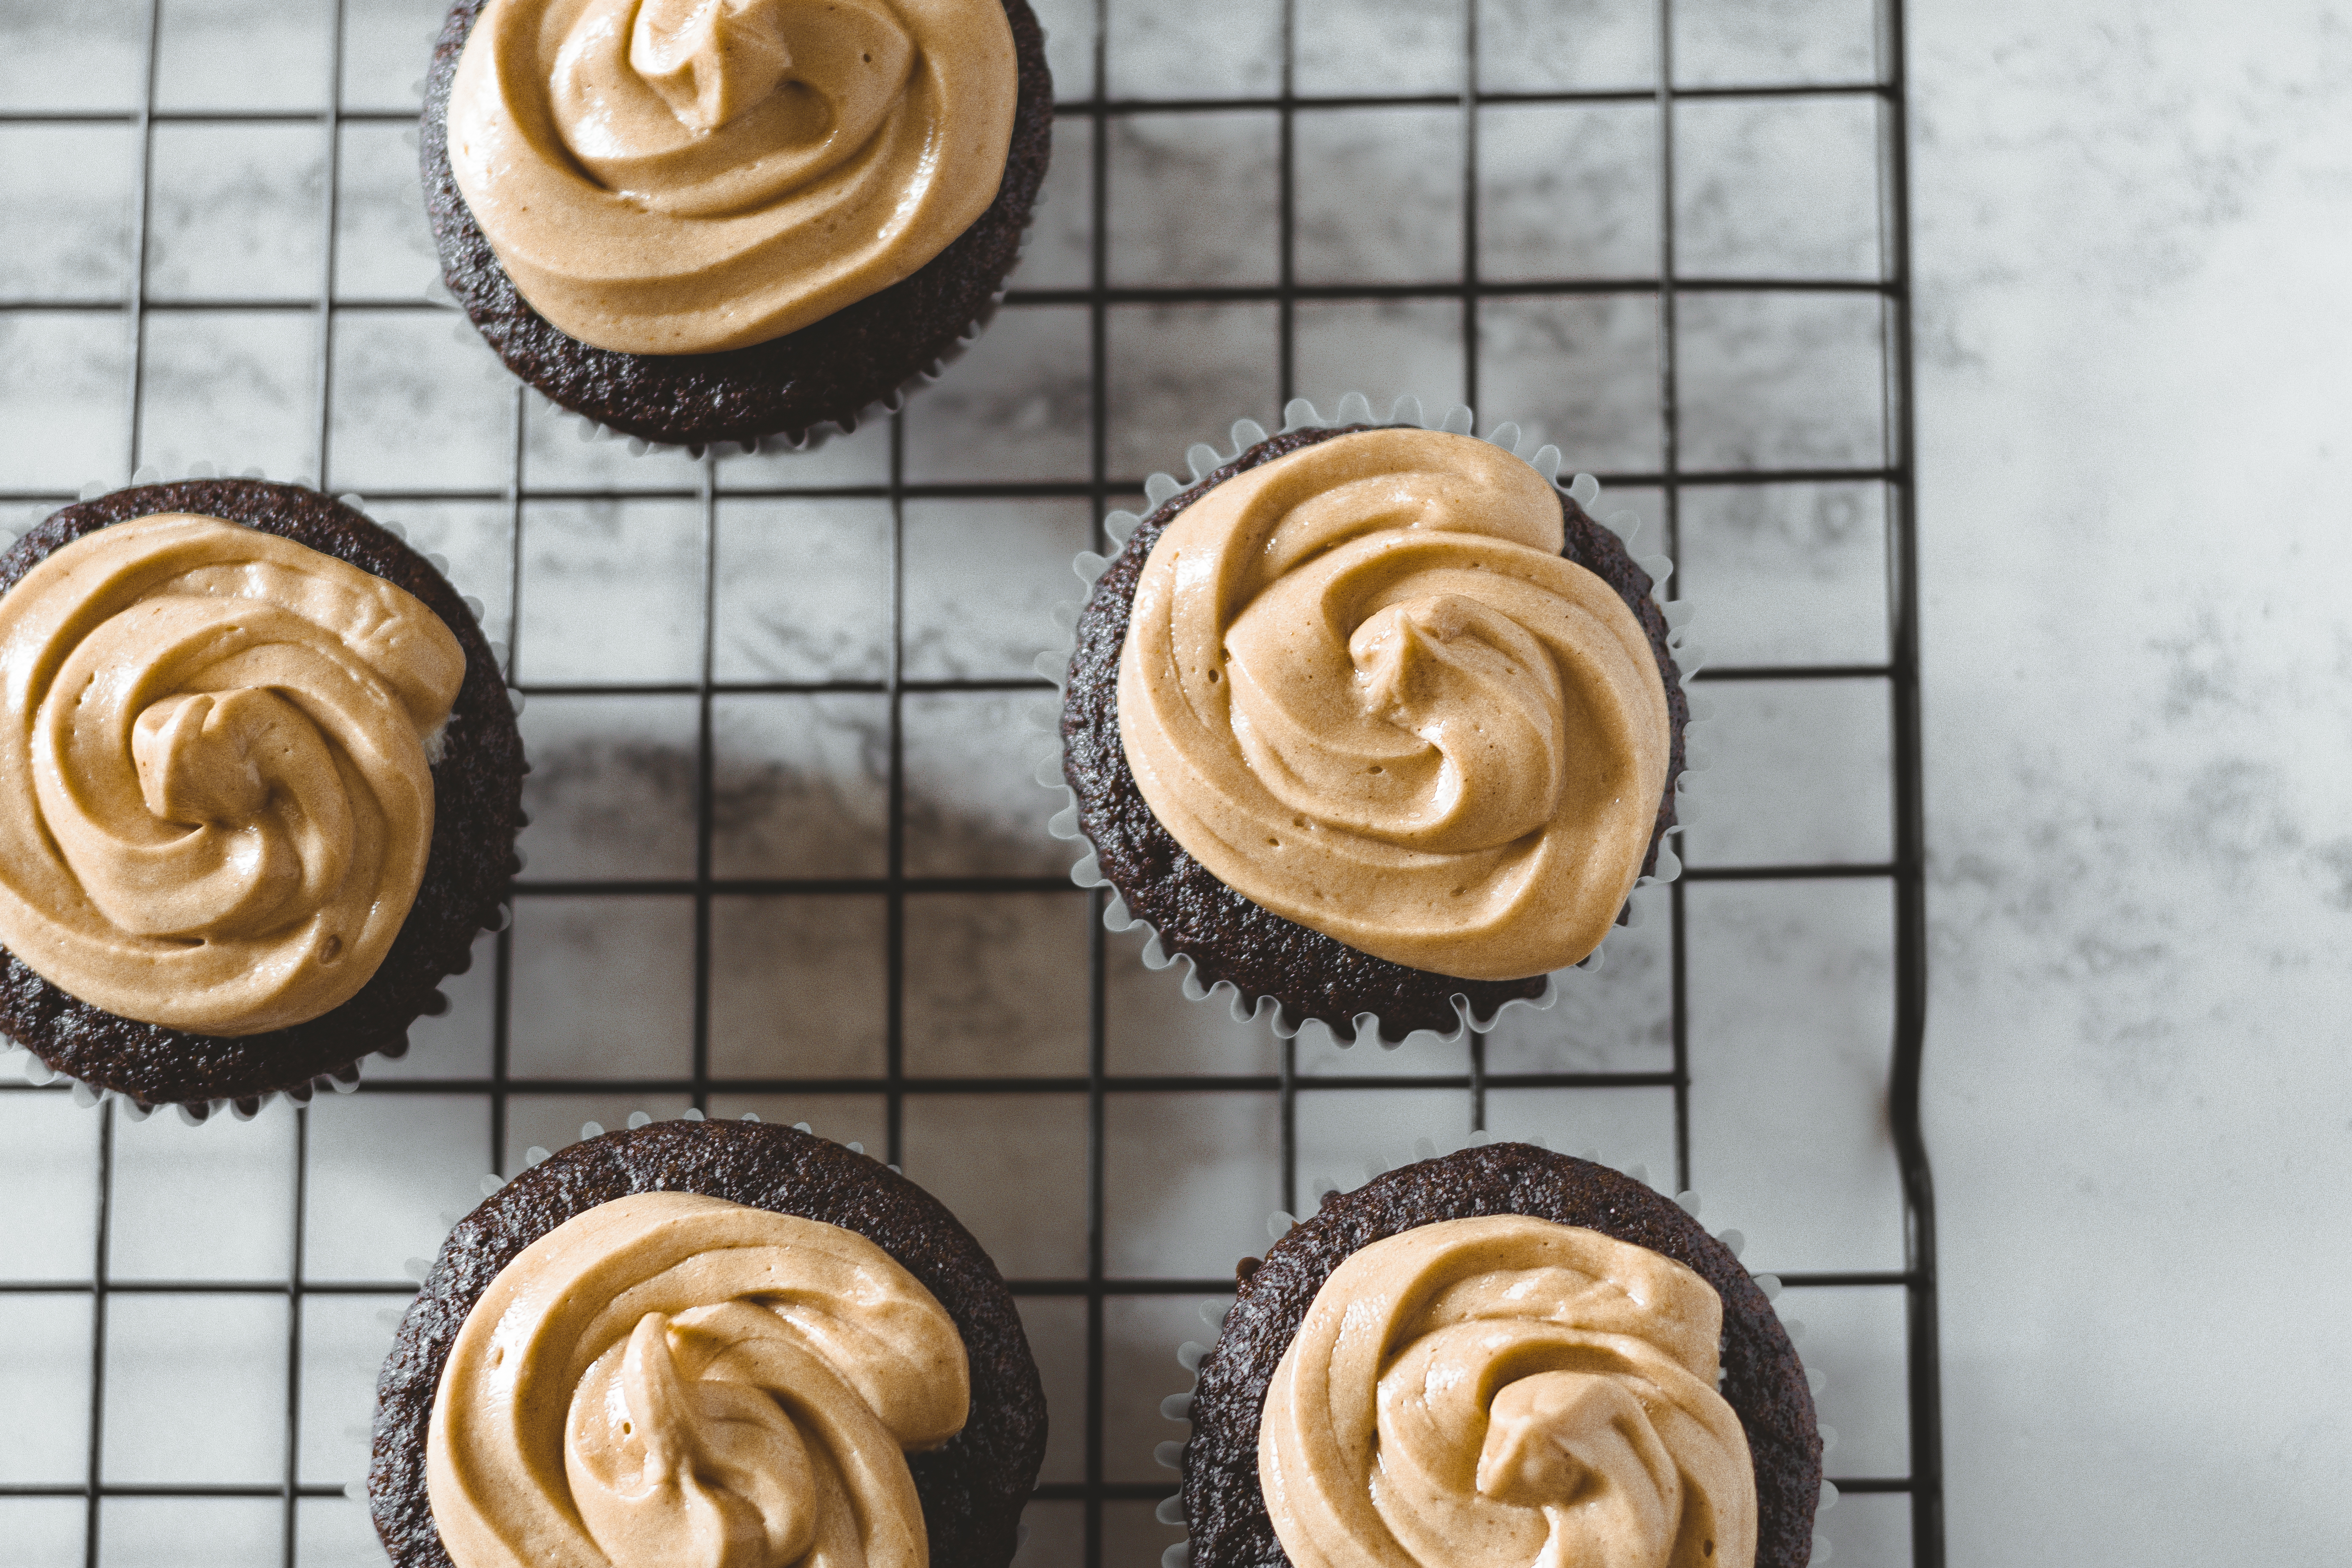 A top view of 5 chocolate cupcakes on cooling rack